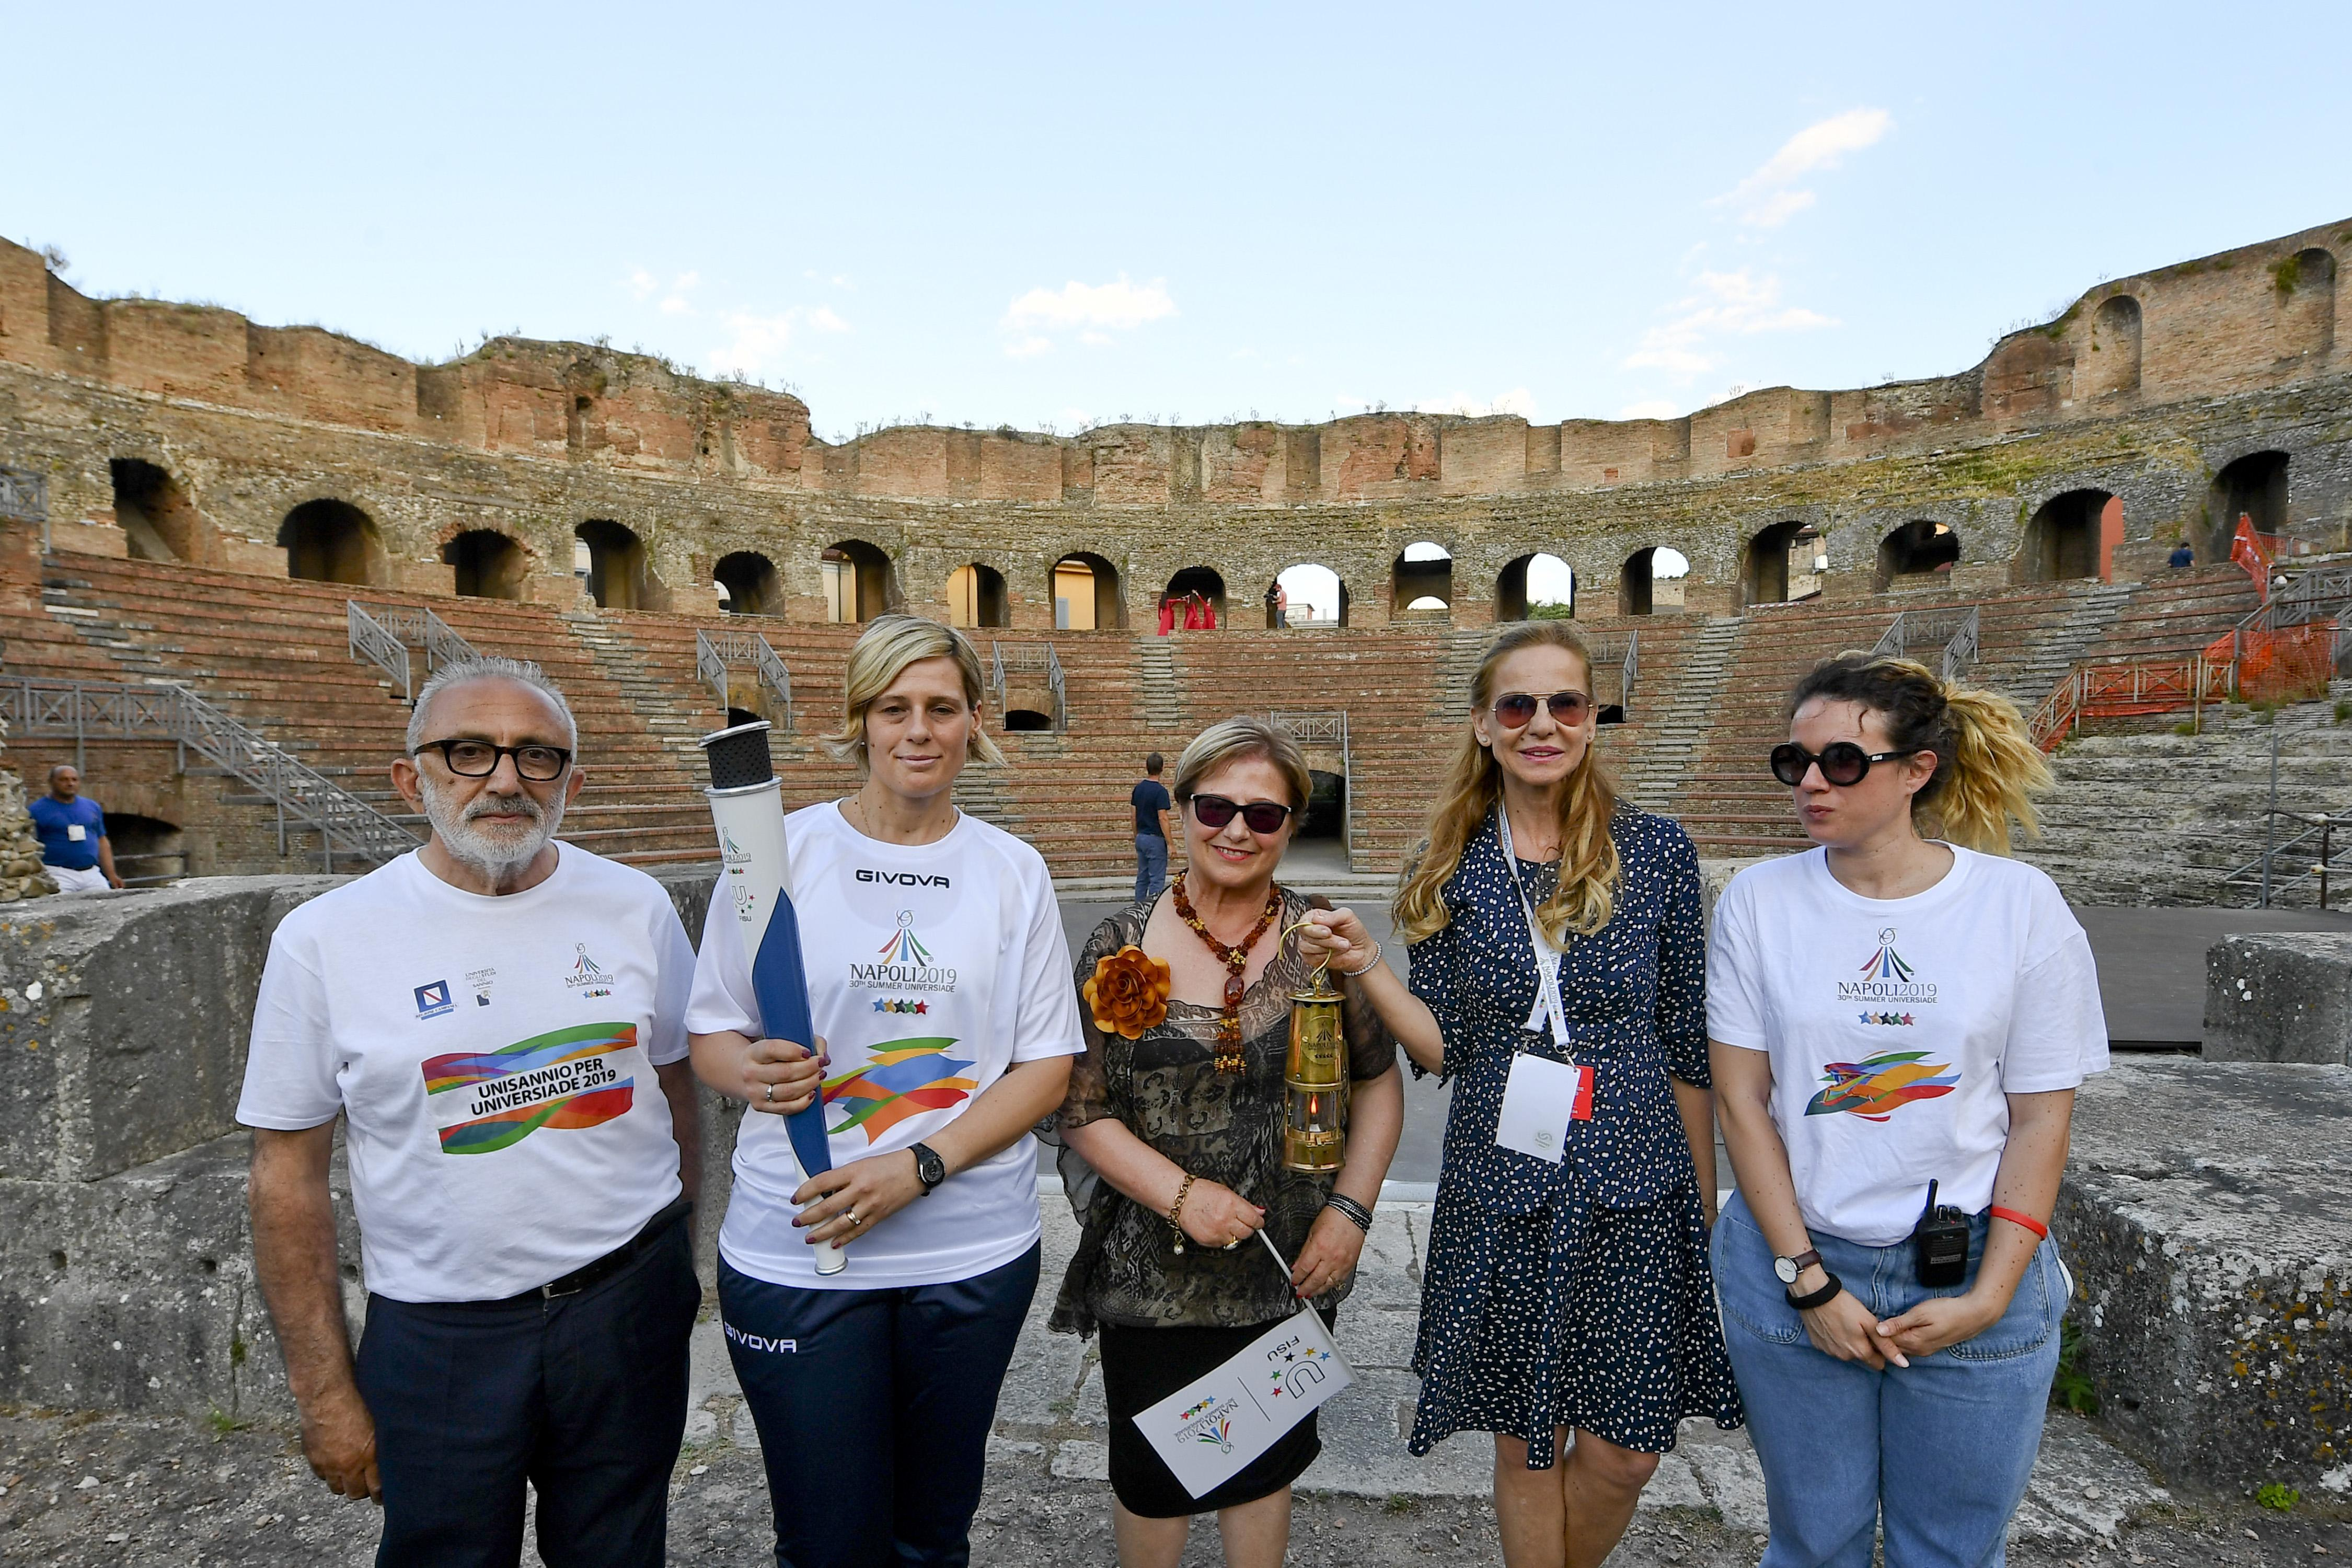 Torch Relay Napoli 2019 – Benevento